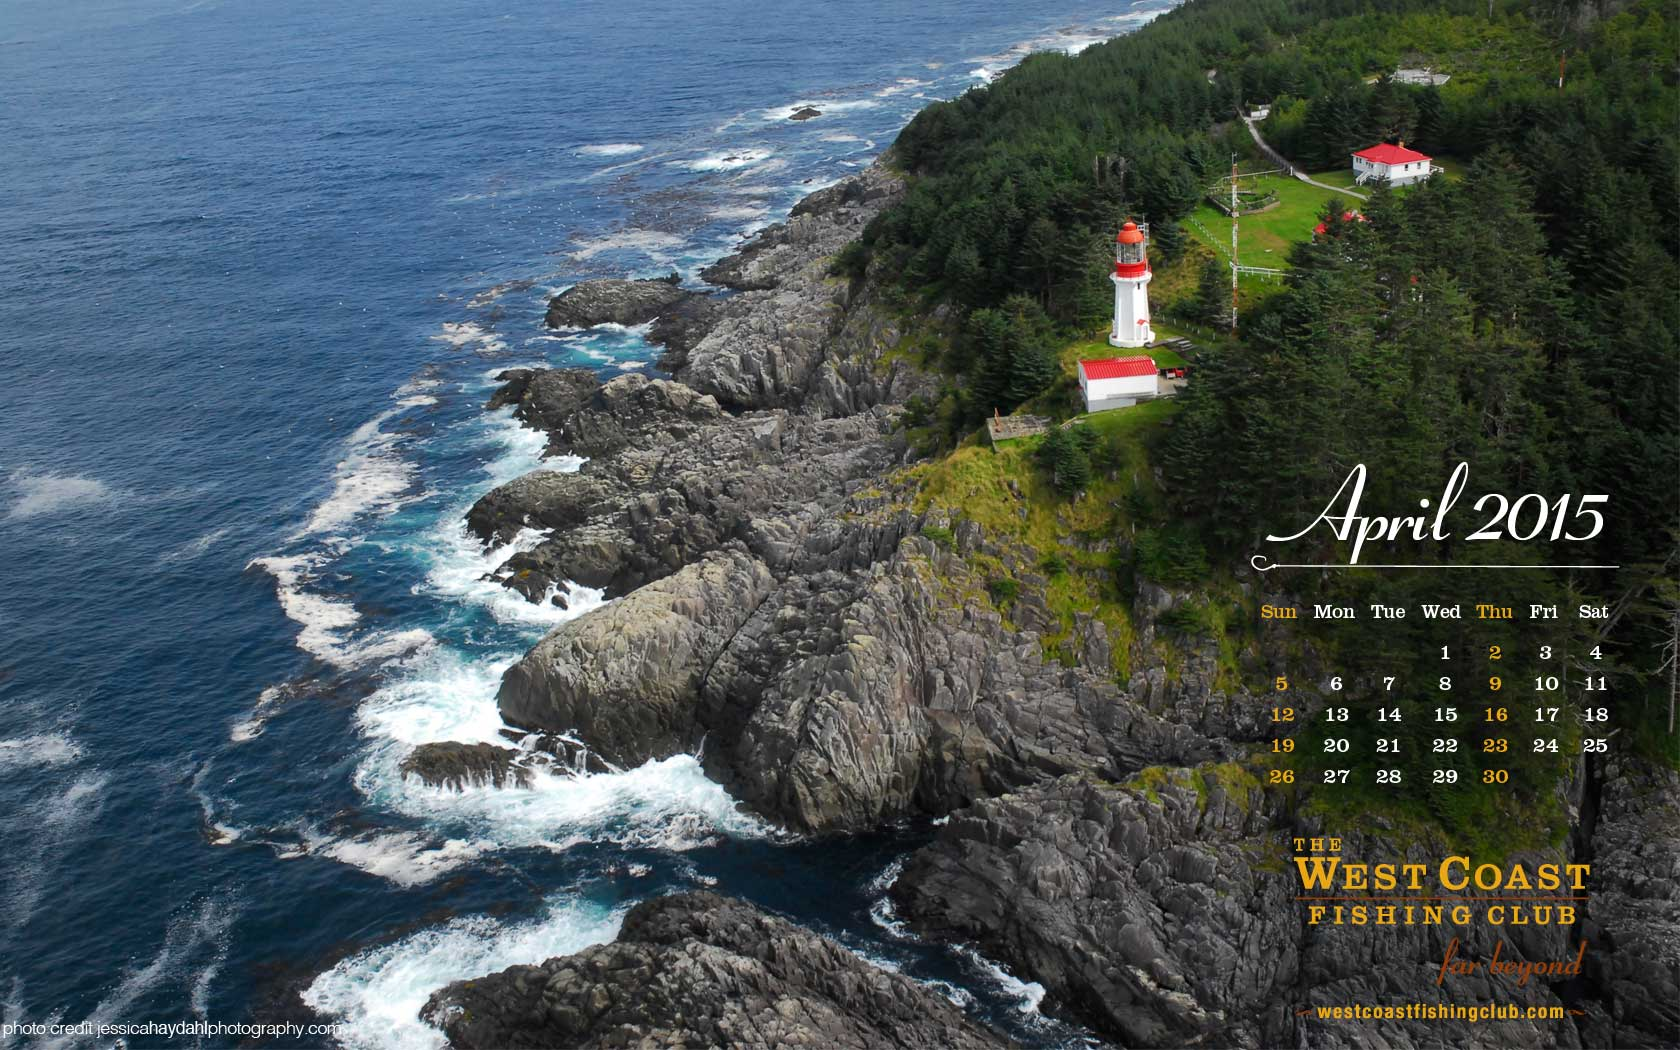 Pin download this months desktop calendar on pinterest for West coast fishing club